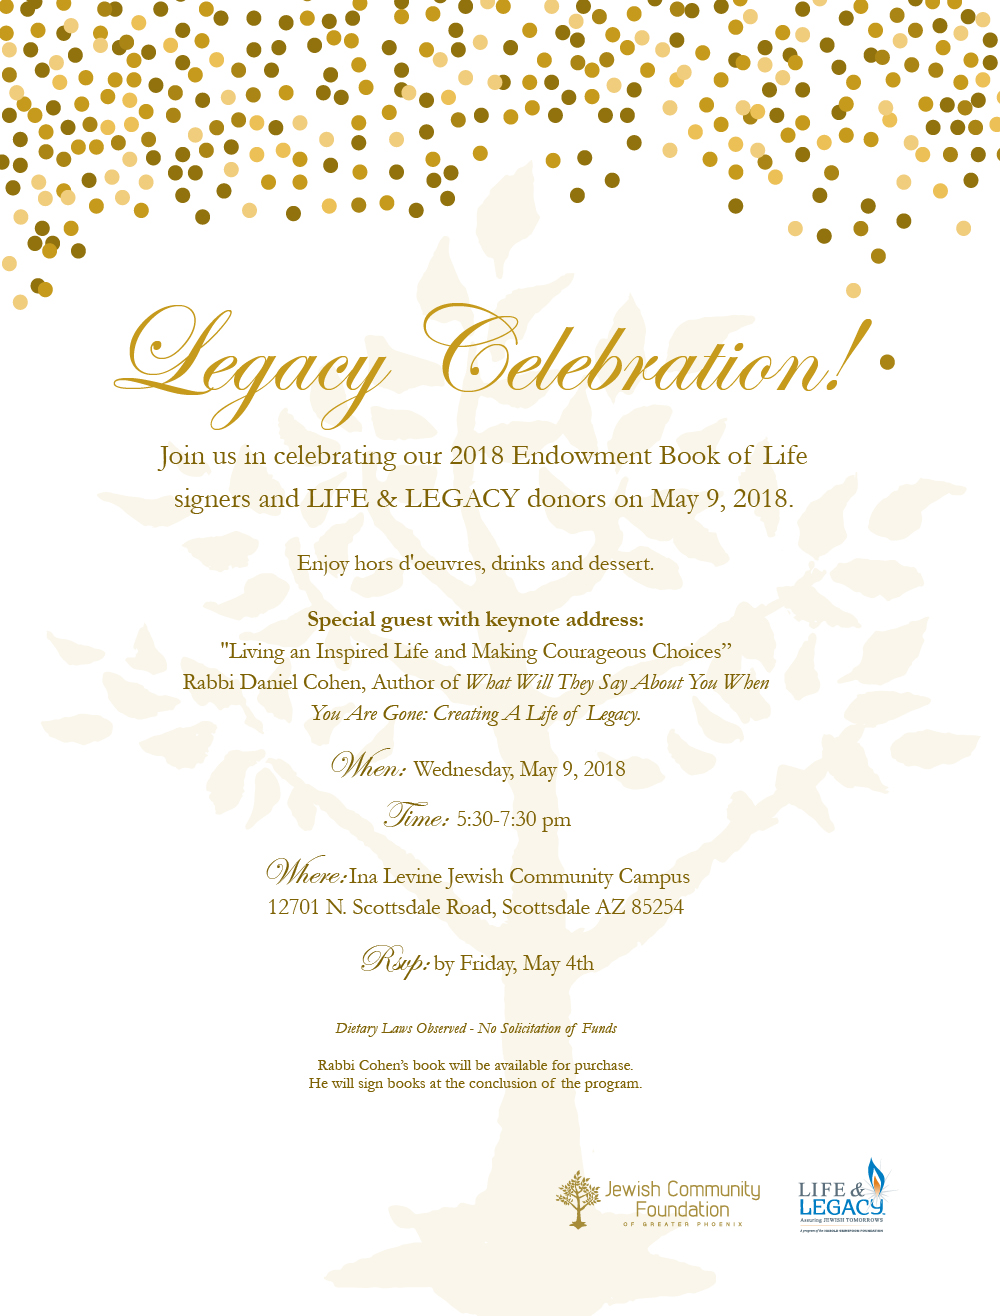 LIFE & LEGACY YEAR 3 SUCCESS AND EBOL EVENT REGISTRATION